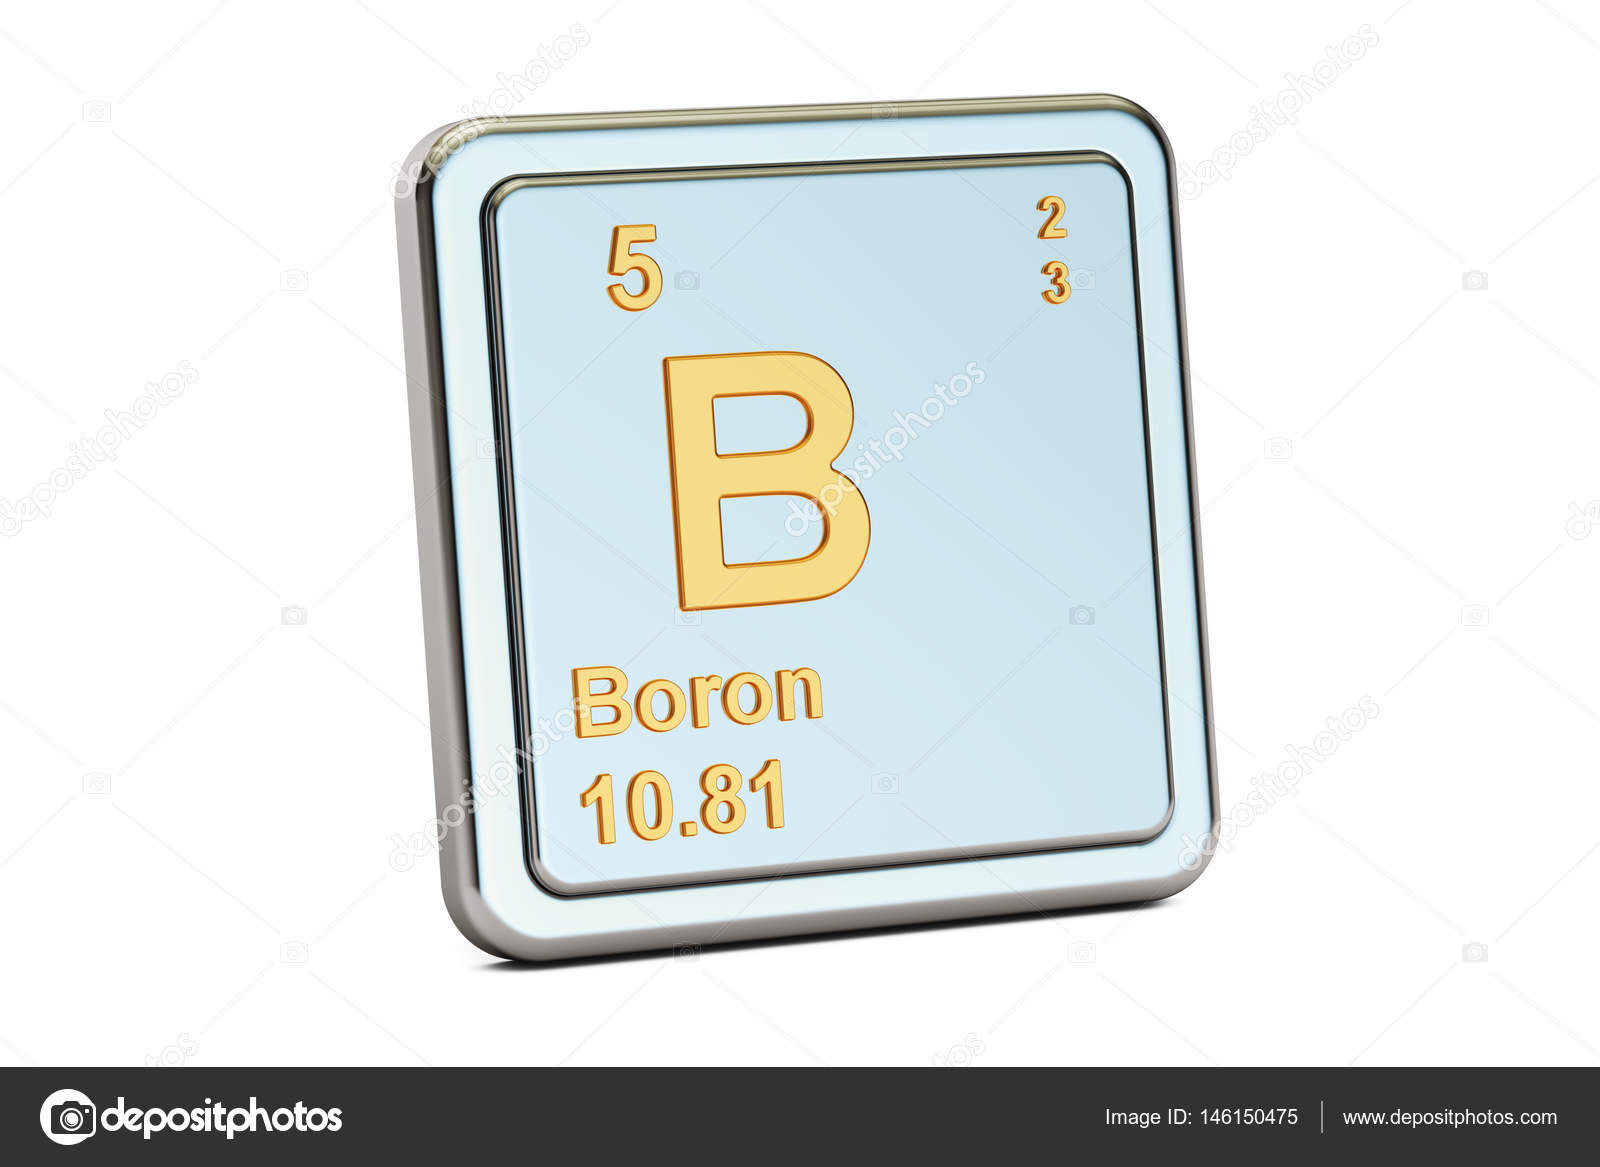 Boron b chemical element sign 3d rendering stock photo boron b chemical element sign 3d rendering isolated on white background photo by alexlmx buycottarizona